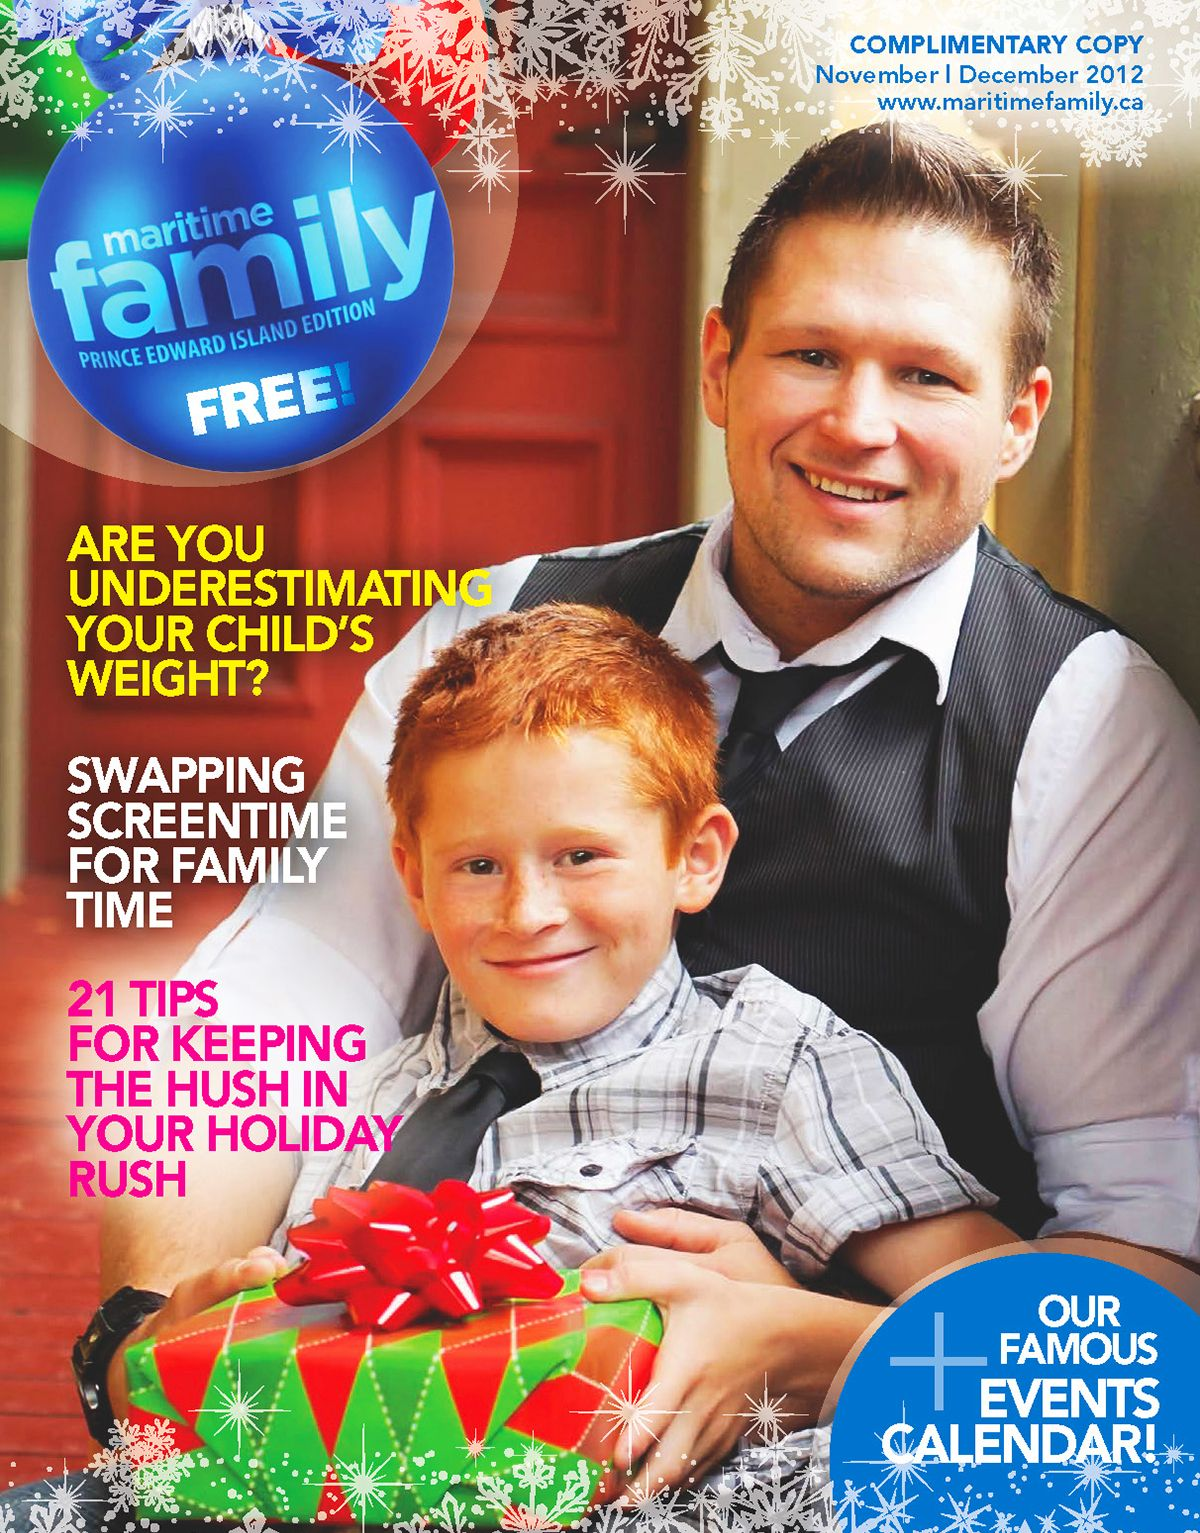 Here Comes The Holiday Articles This Time A Cover Mention